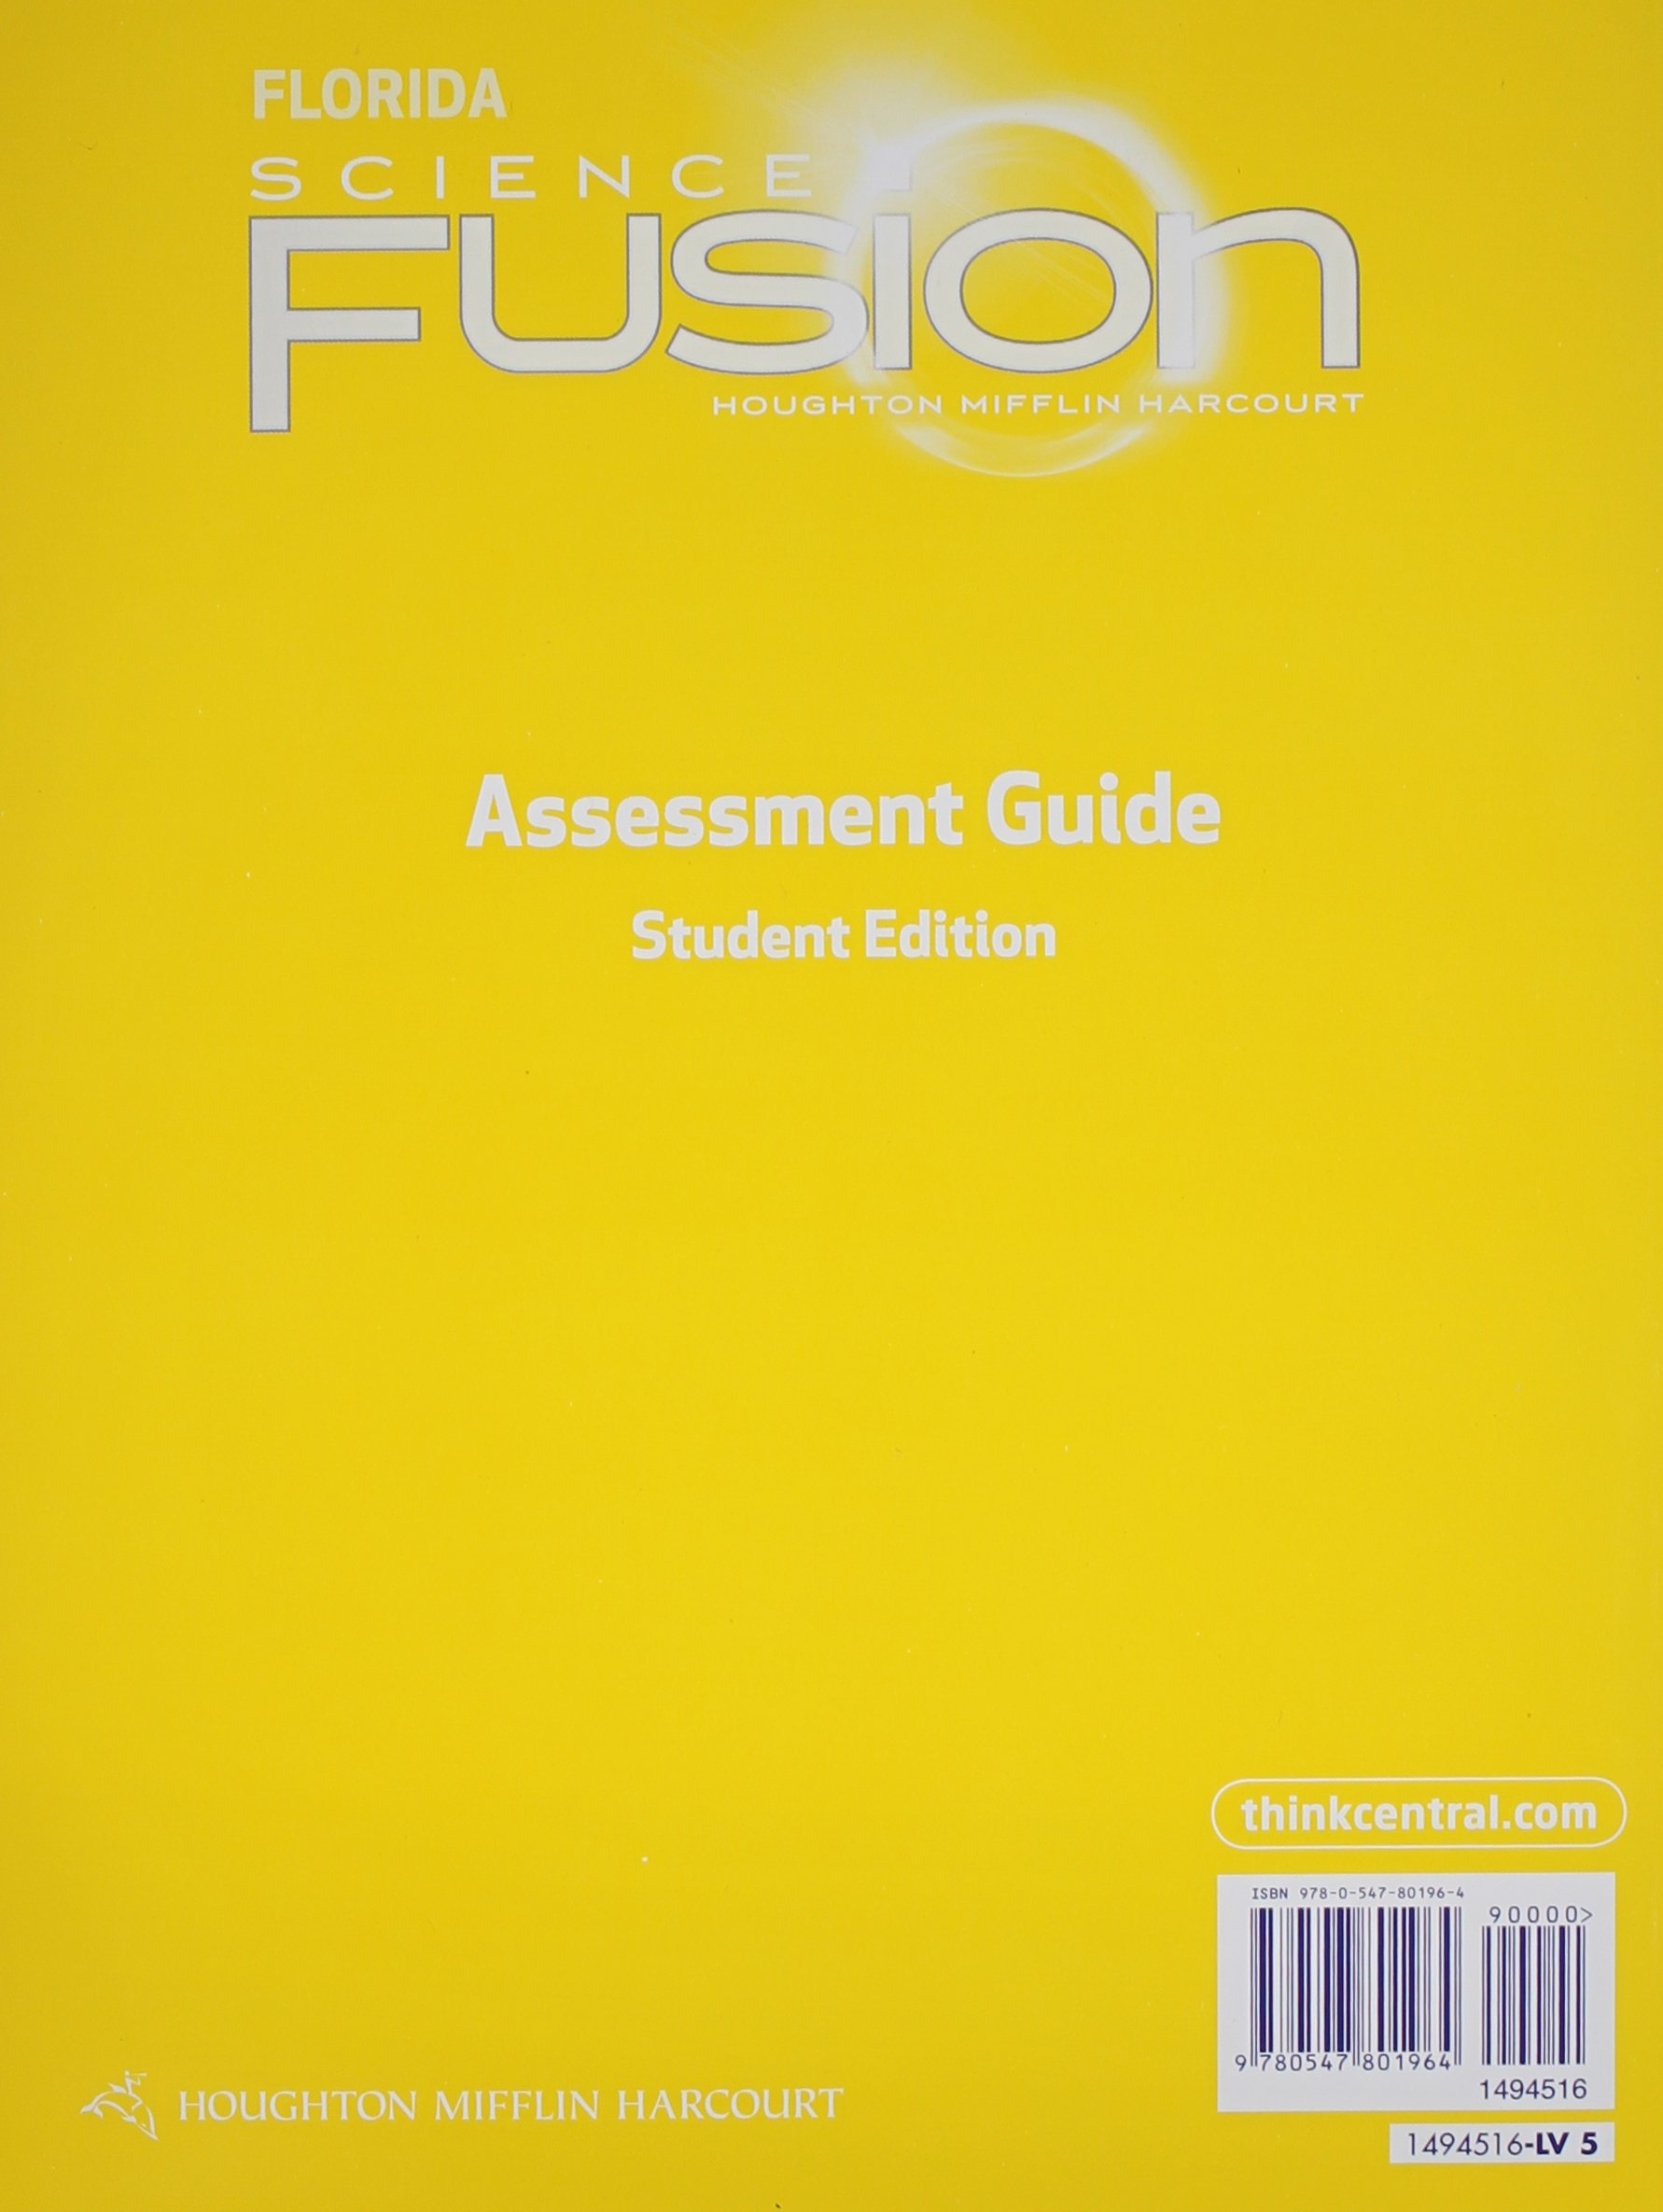 Houghton Mifflin Harcourt Science Fusion Florida: Assessment Books Grade 5:  HOUGHTON MIFFLIN HARCOURT: 9780547801964: Amazon.com: Books